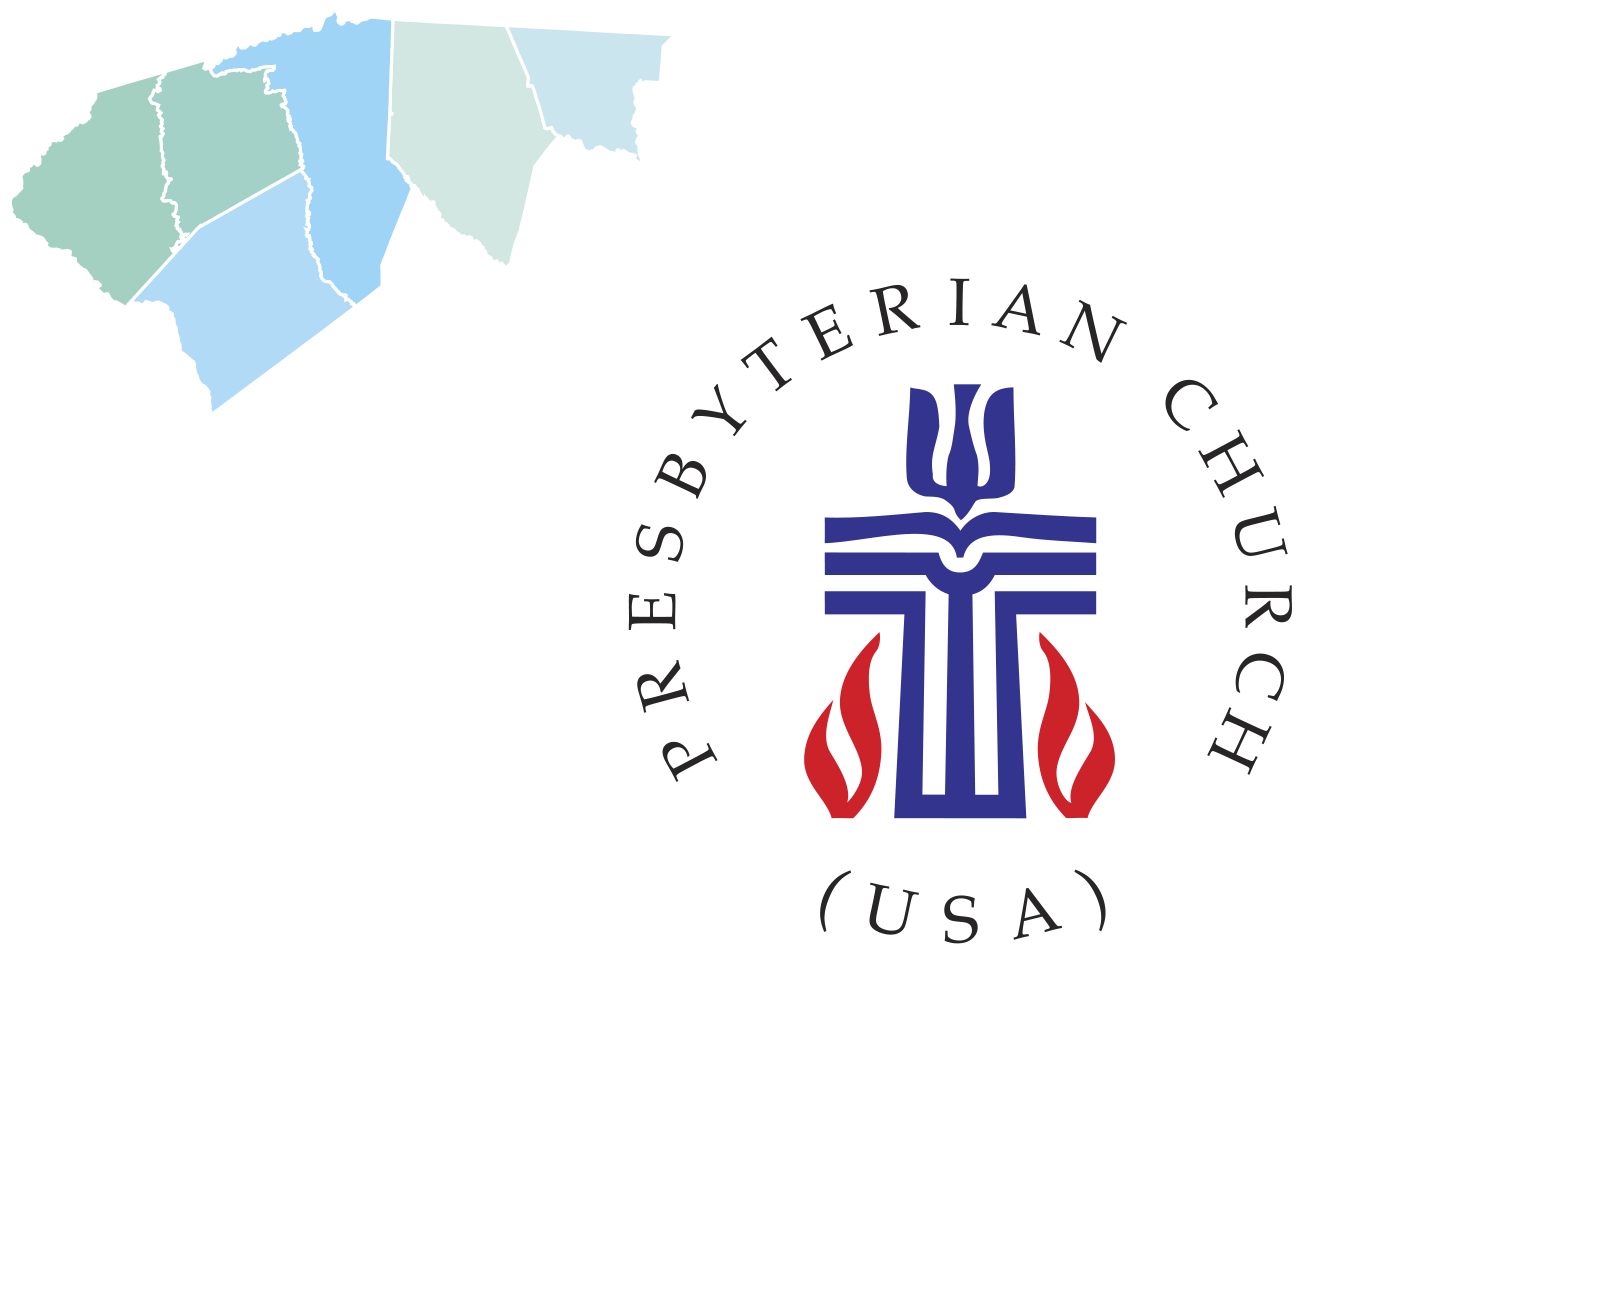 Foothills Presbytery Area Map